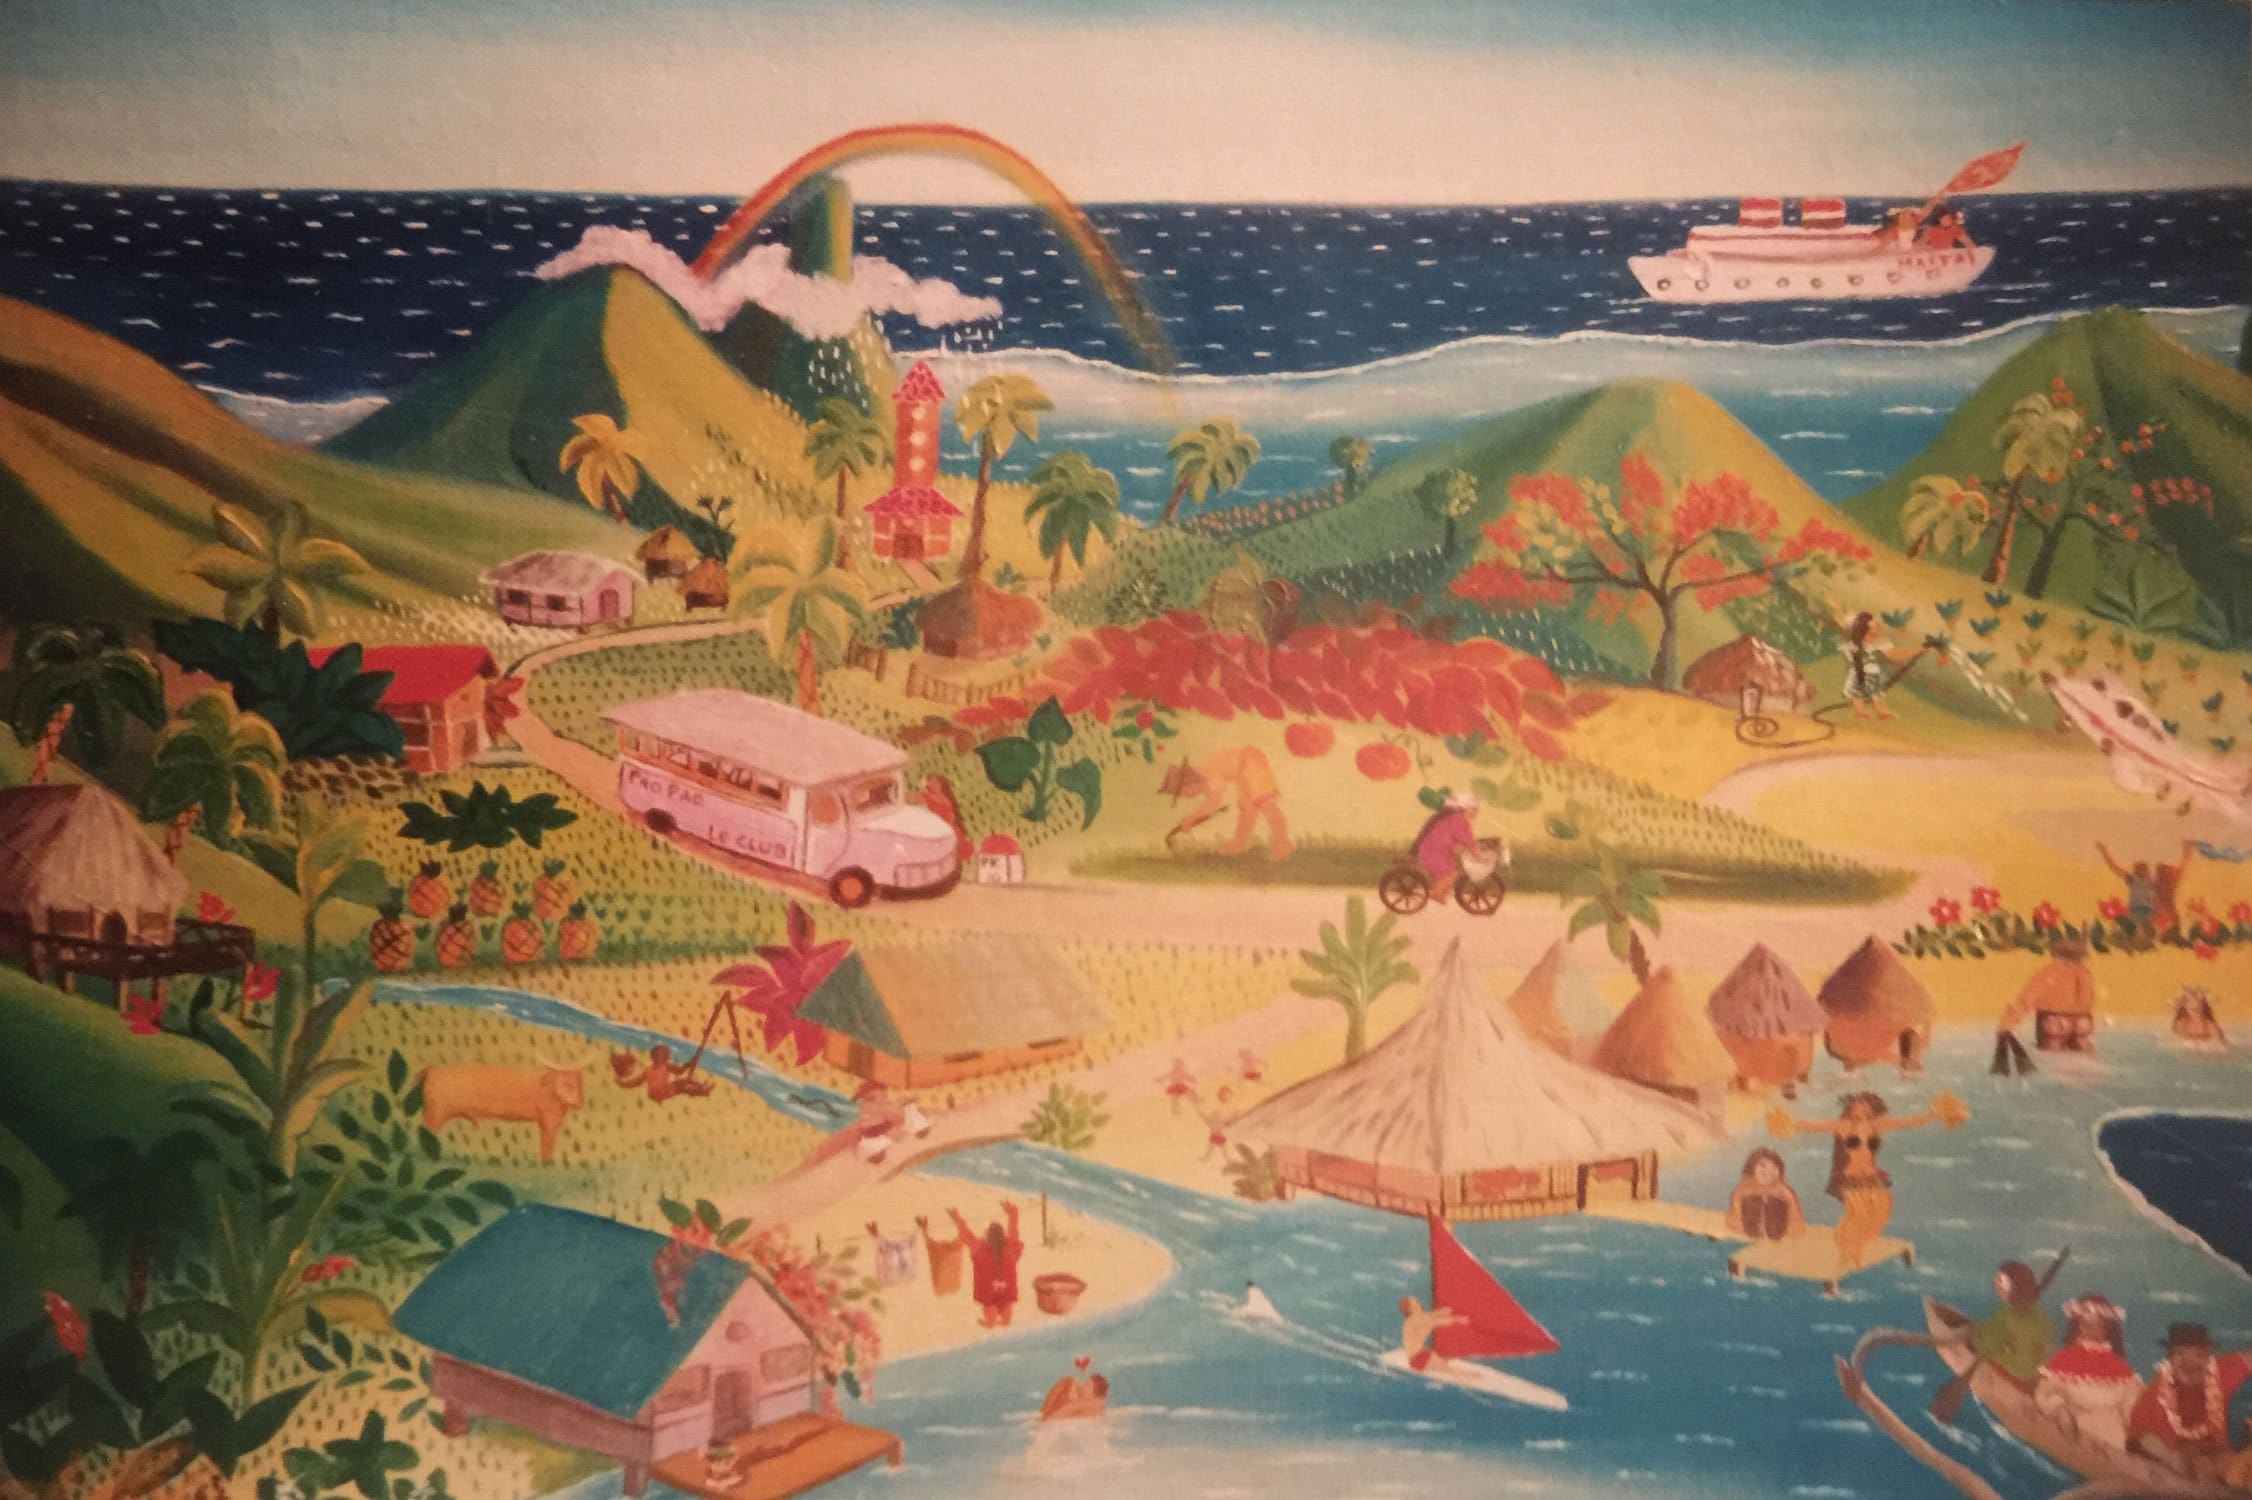 Naive painting of a beach and island scenery in Tahiti.